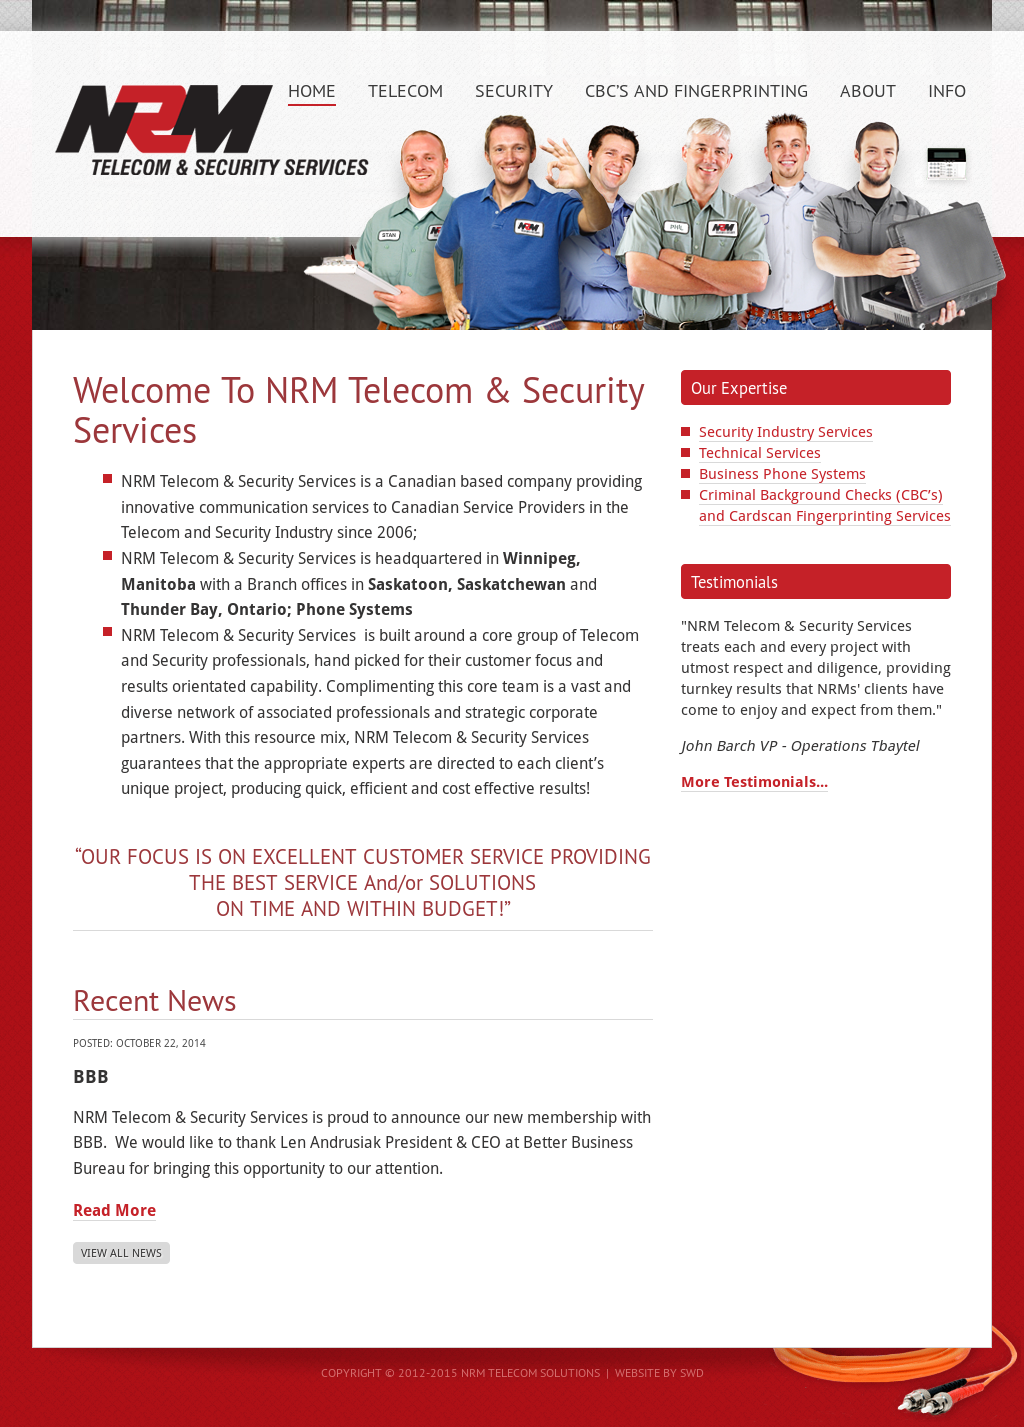 Nrm Telecom Solutions Competitors, Revenue and Employees